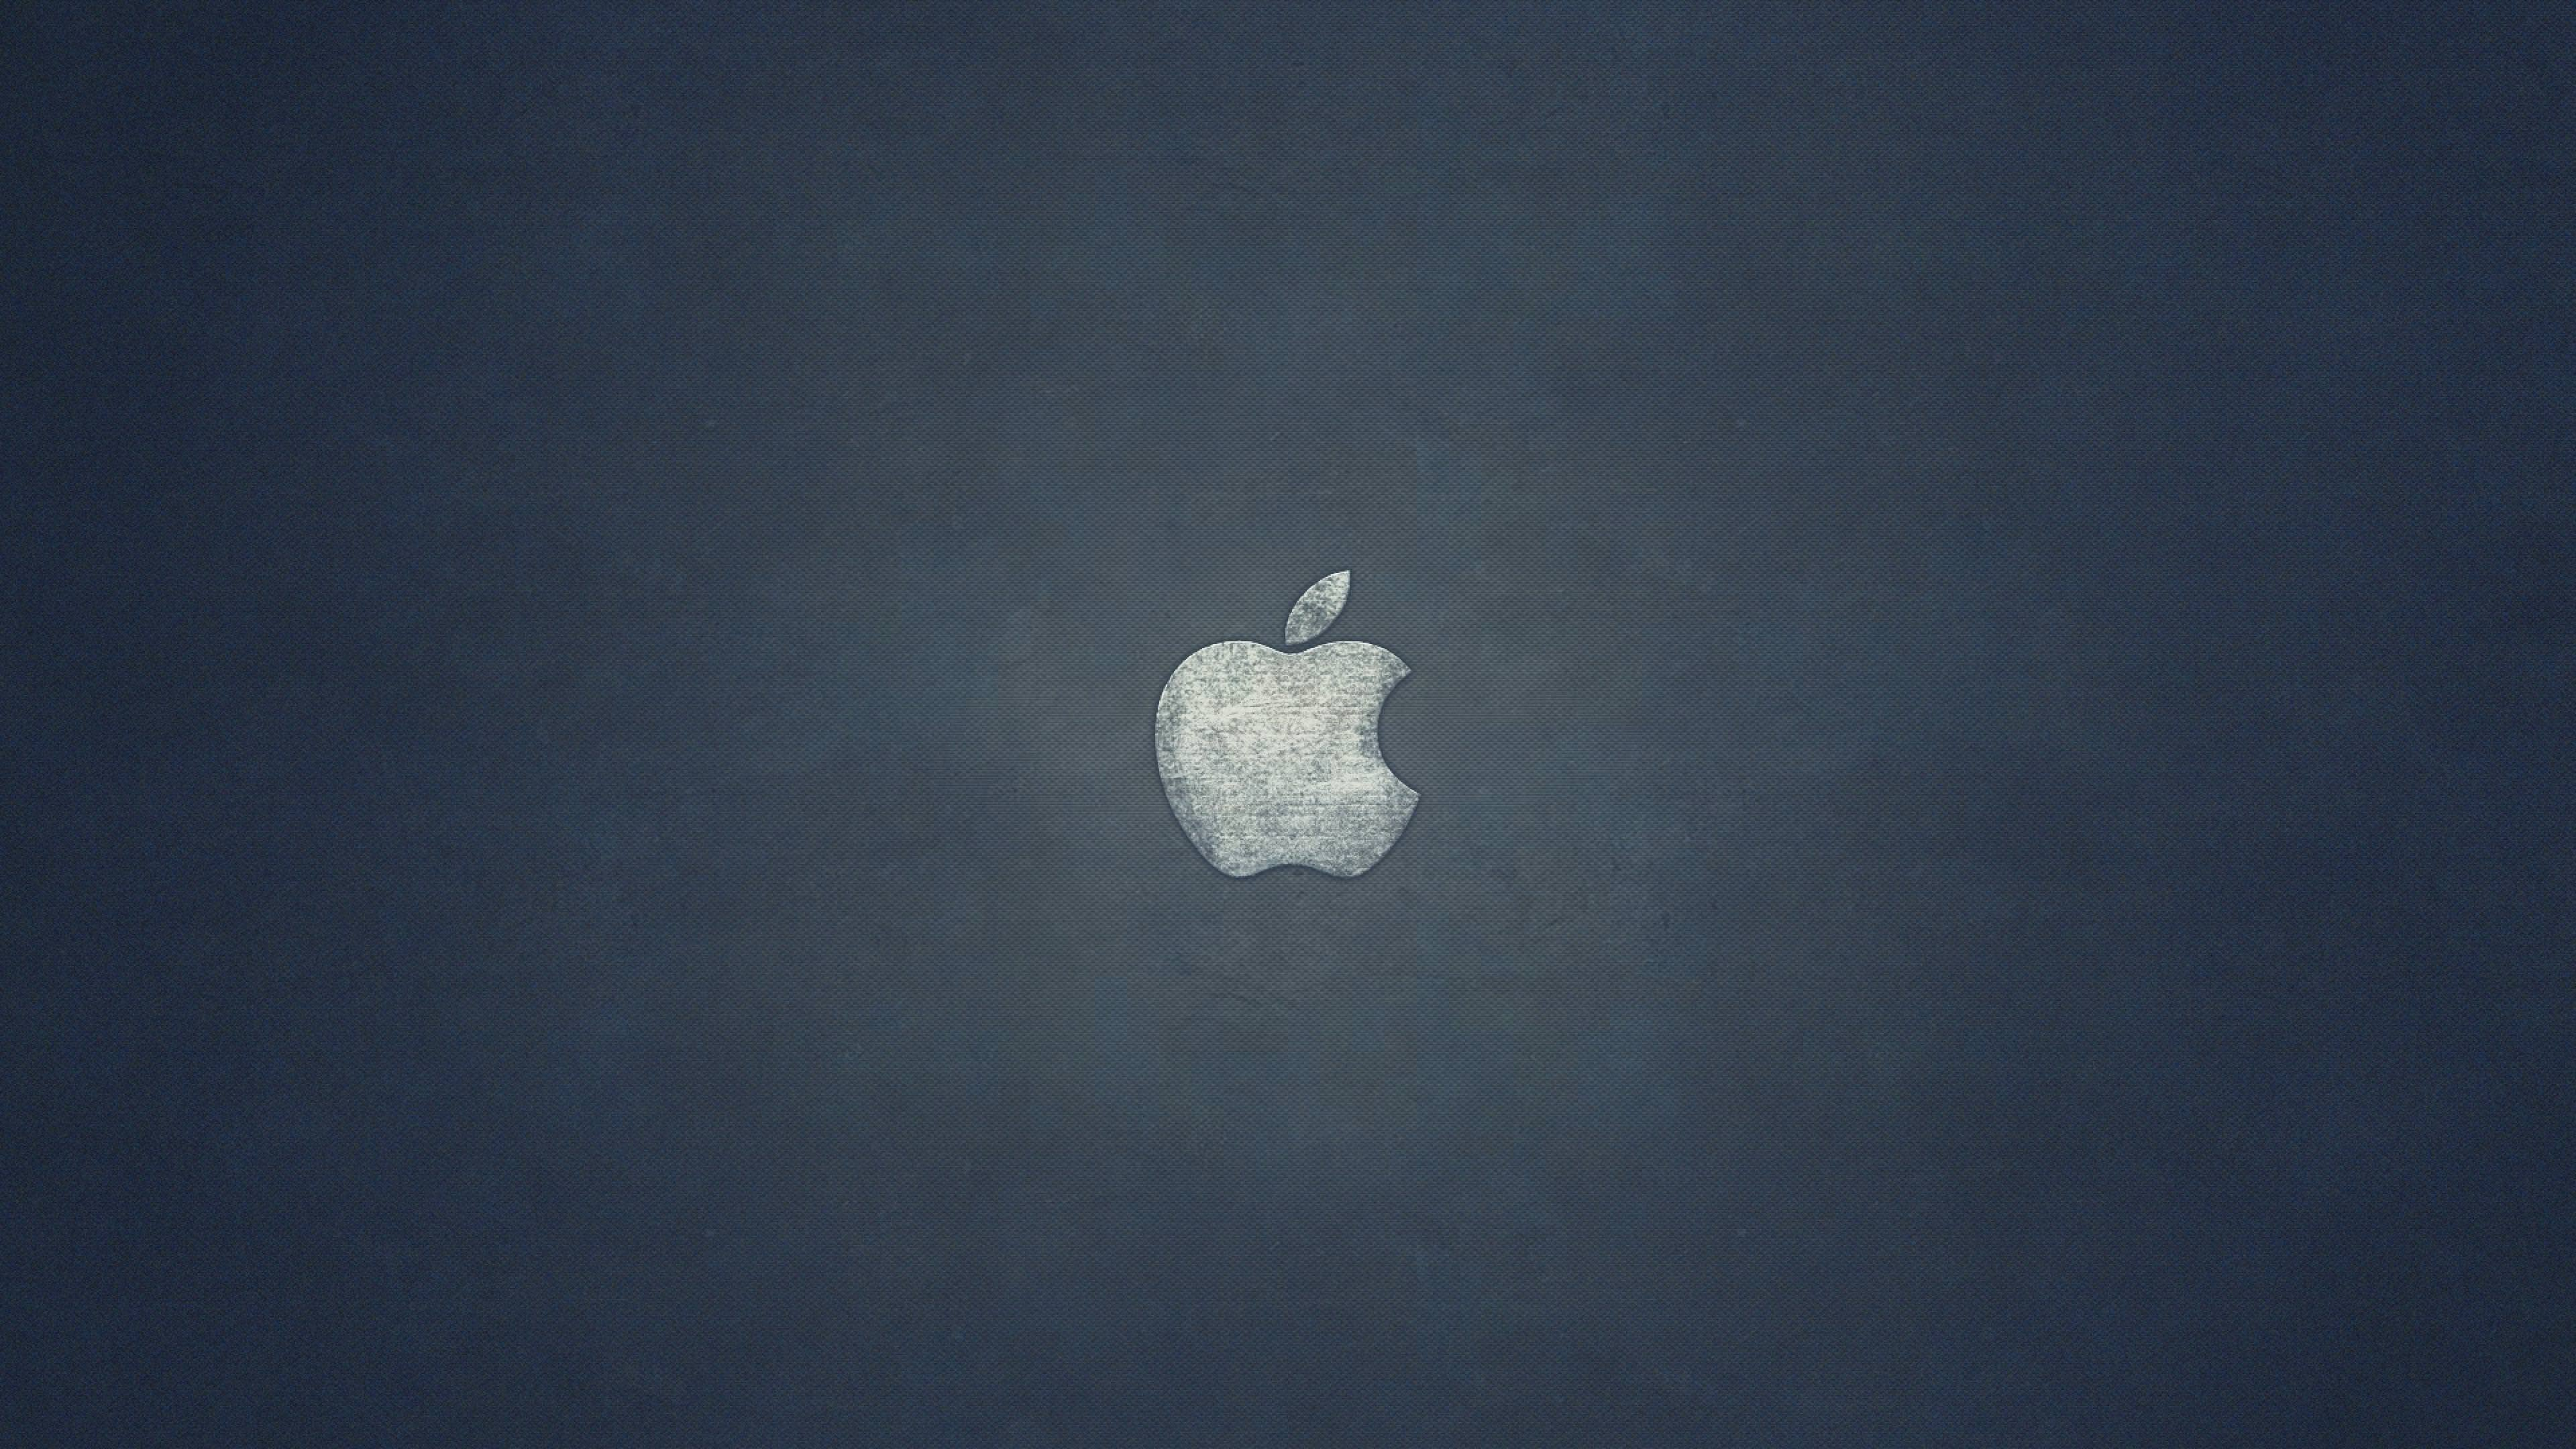 Apple 4k Wallpapers For Your Desktop Or Mobile Screen Free And Easy To Download